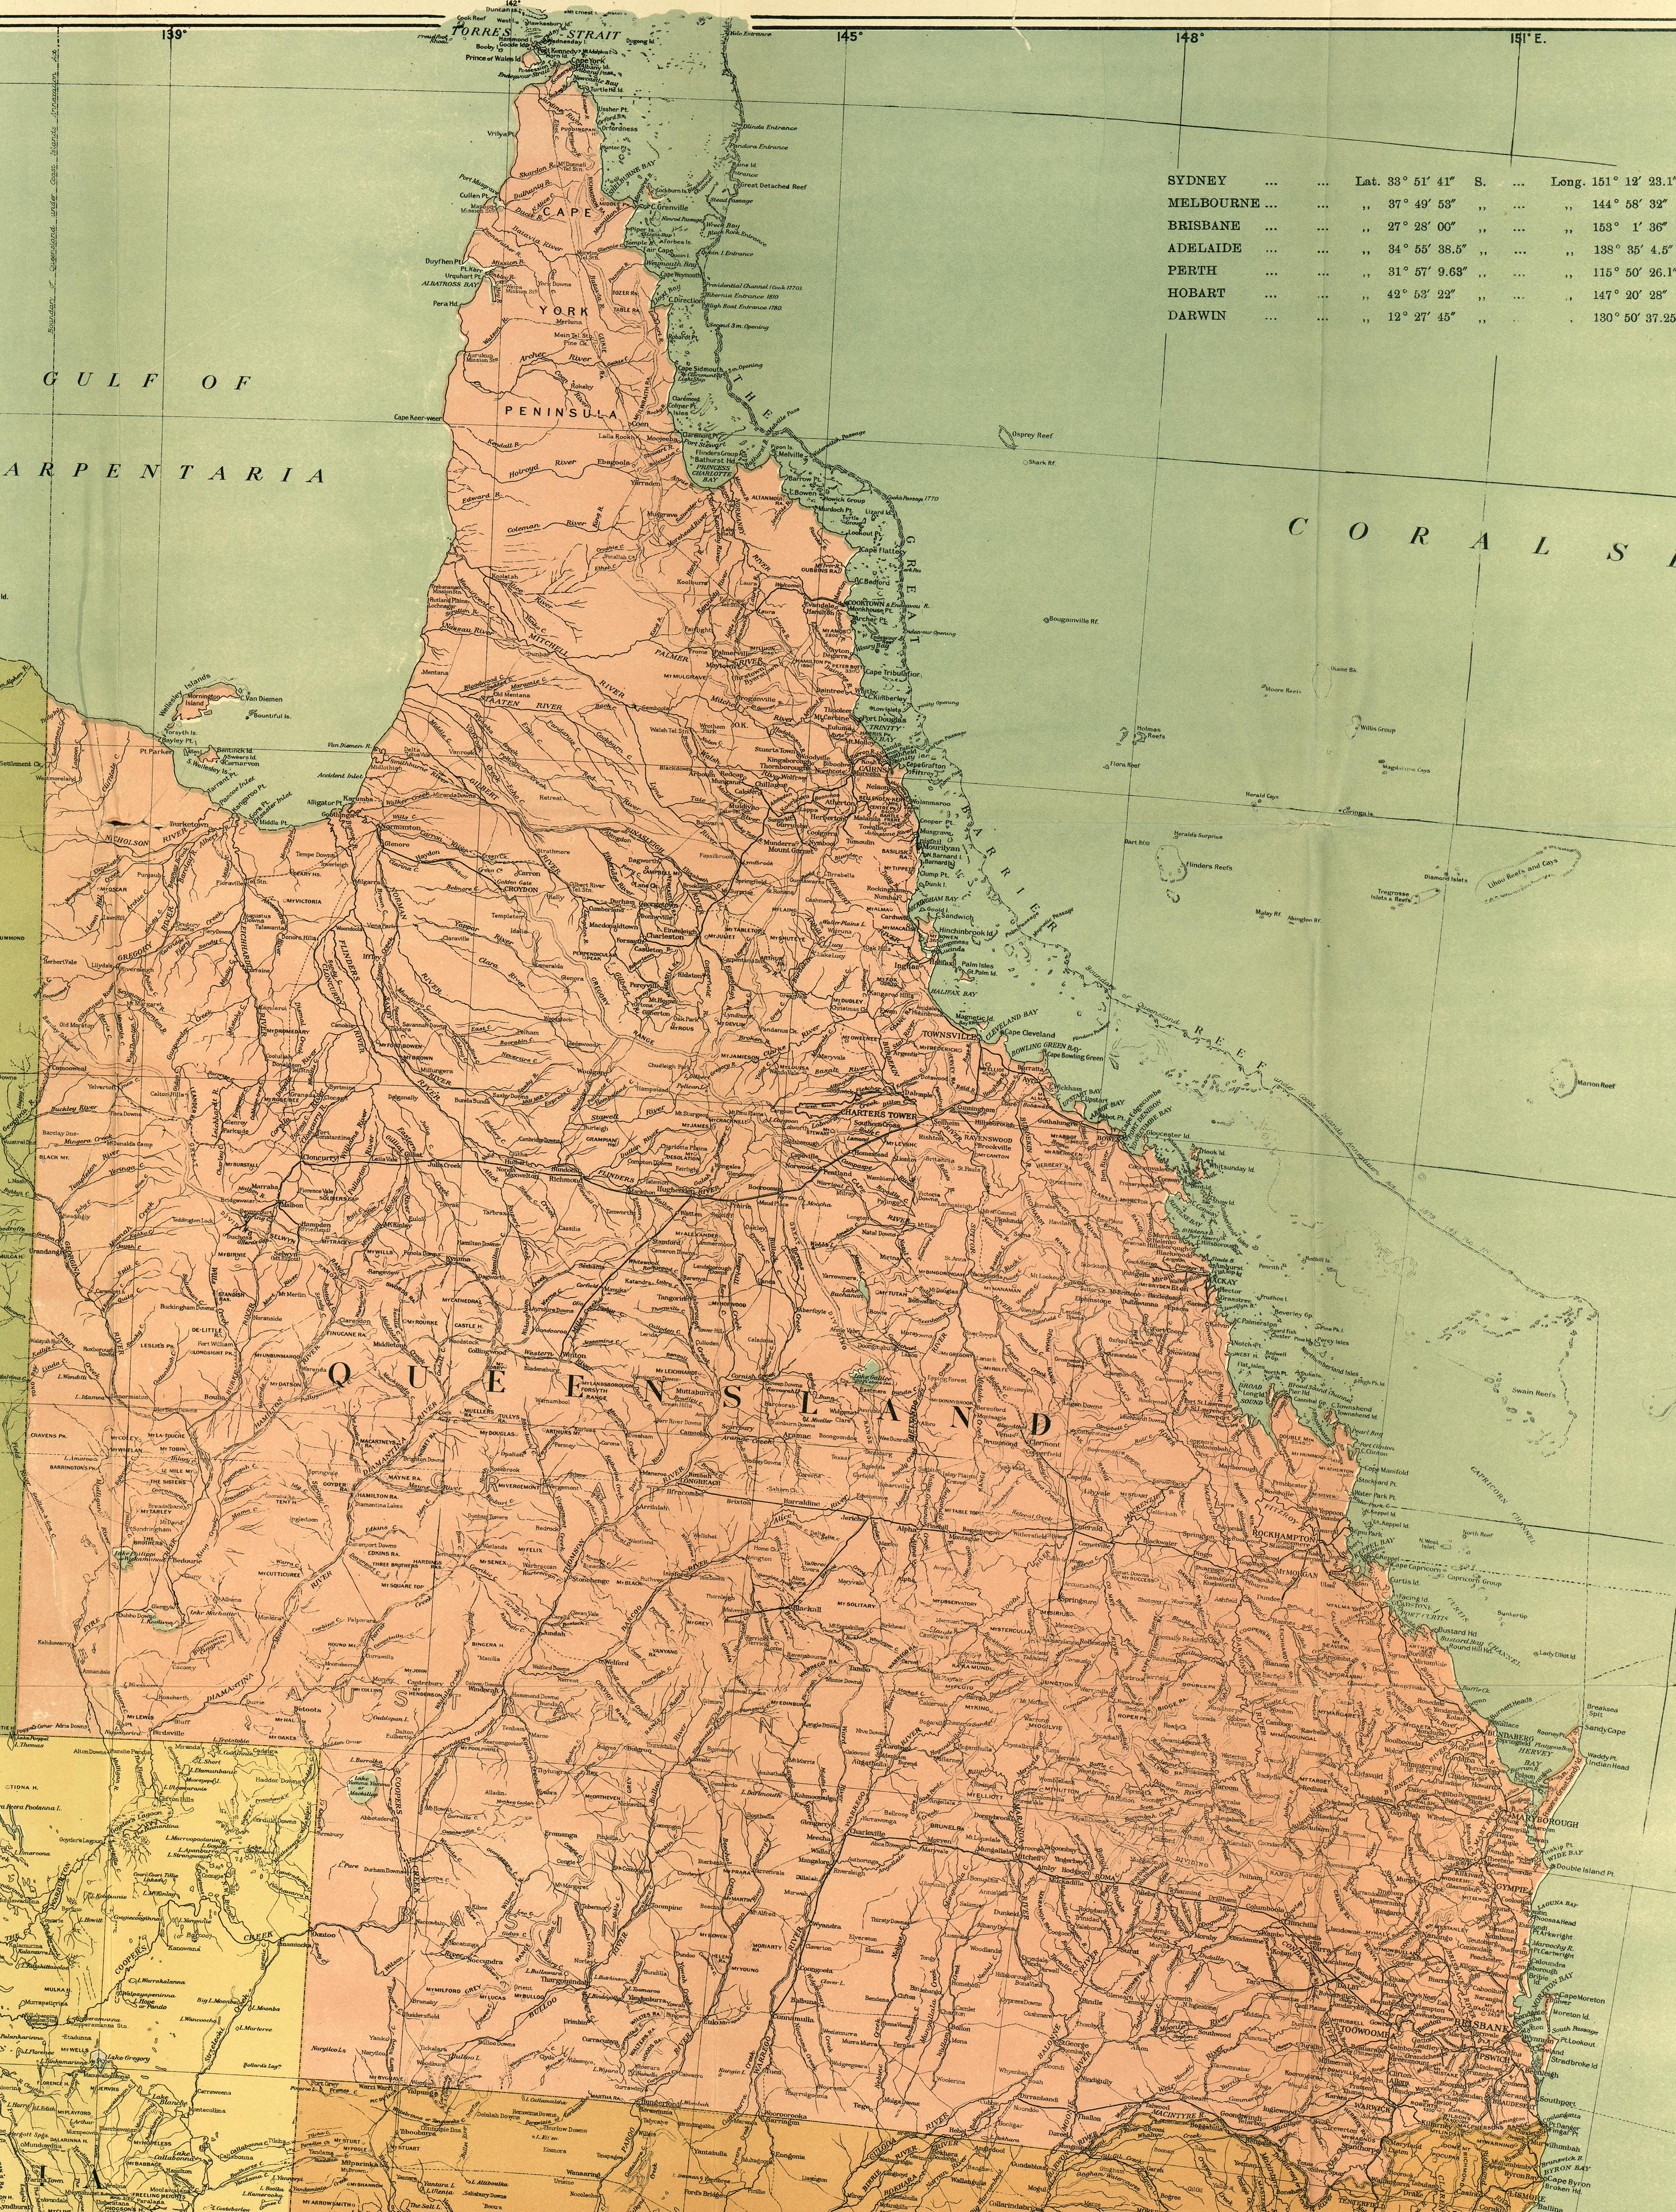 Australia and the Pacific Historical Maps - Perry-Castañeda Map ...